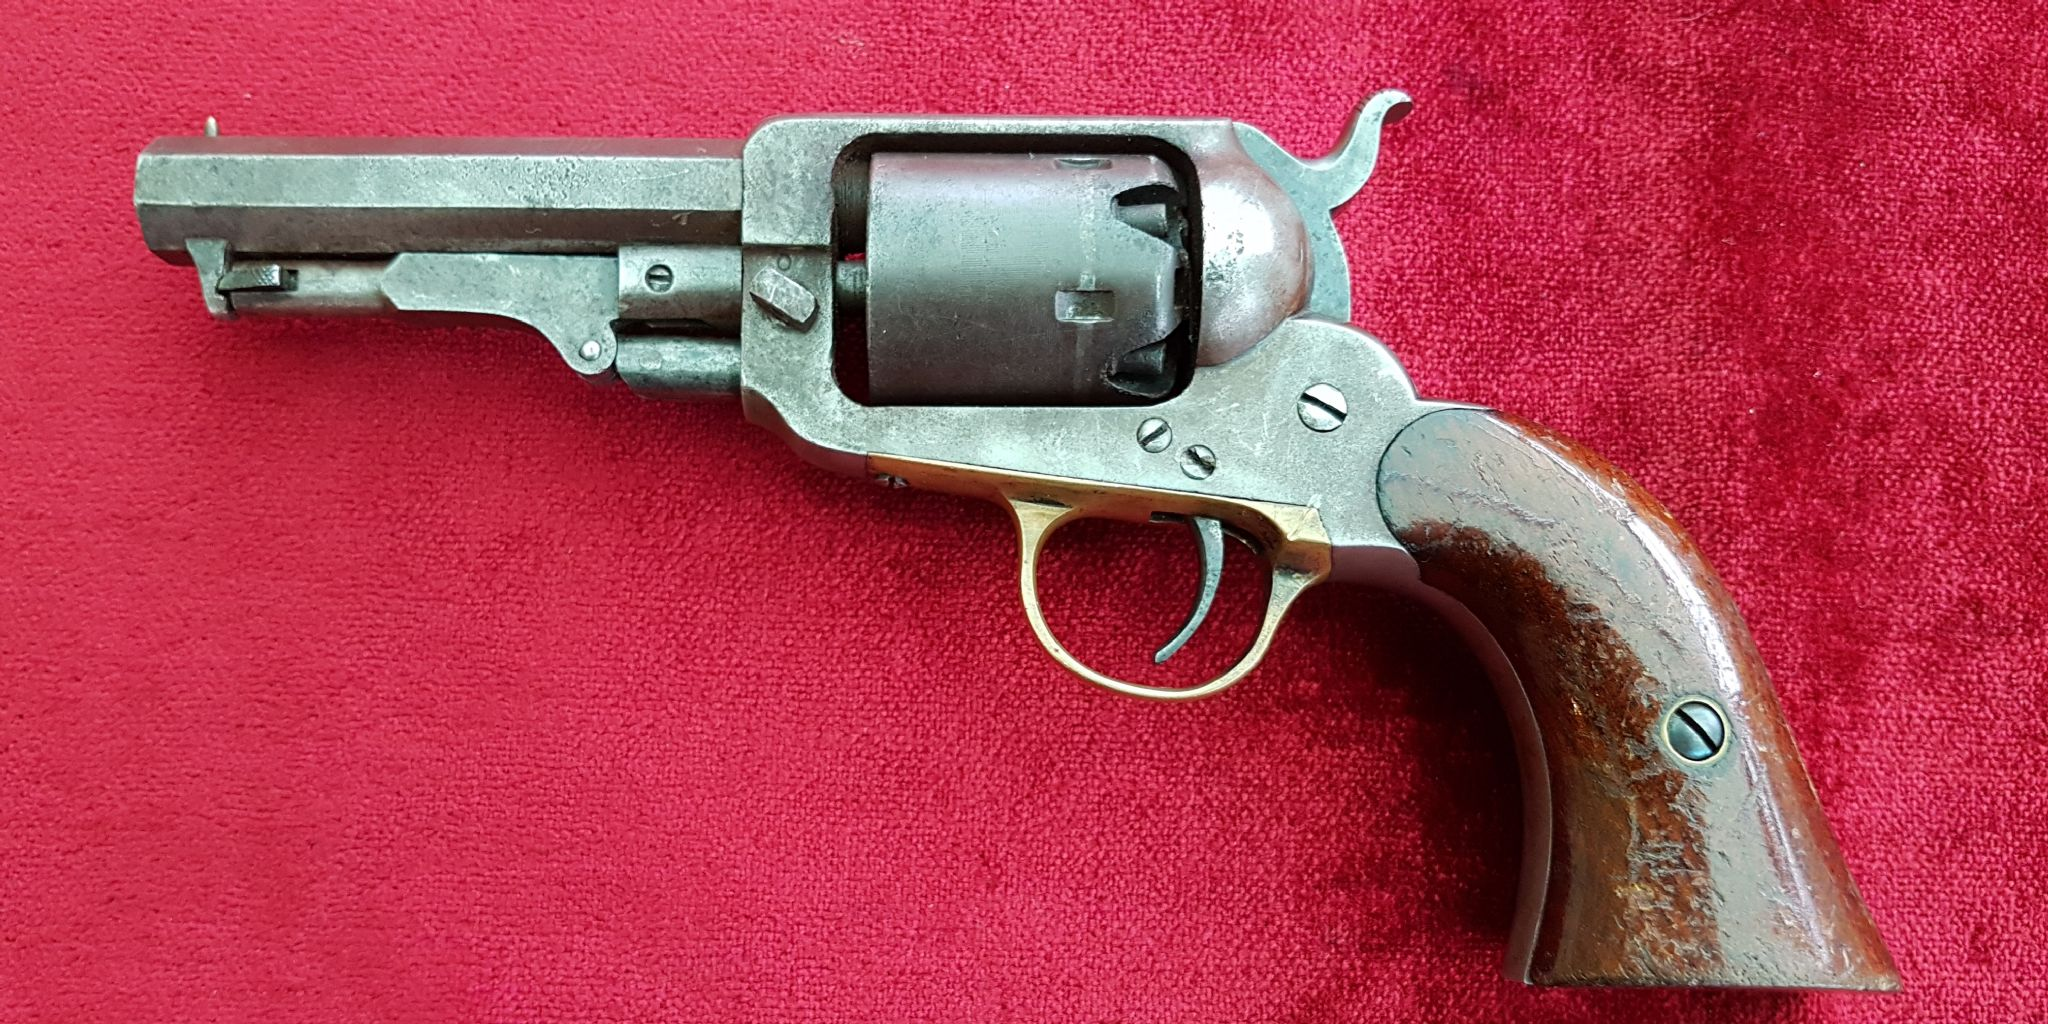 X X X SOLD X X X 5 shot pocket Percussion revolver made by E